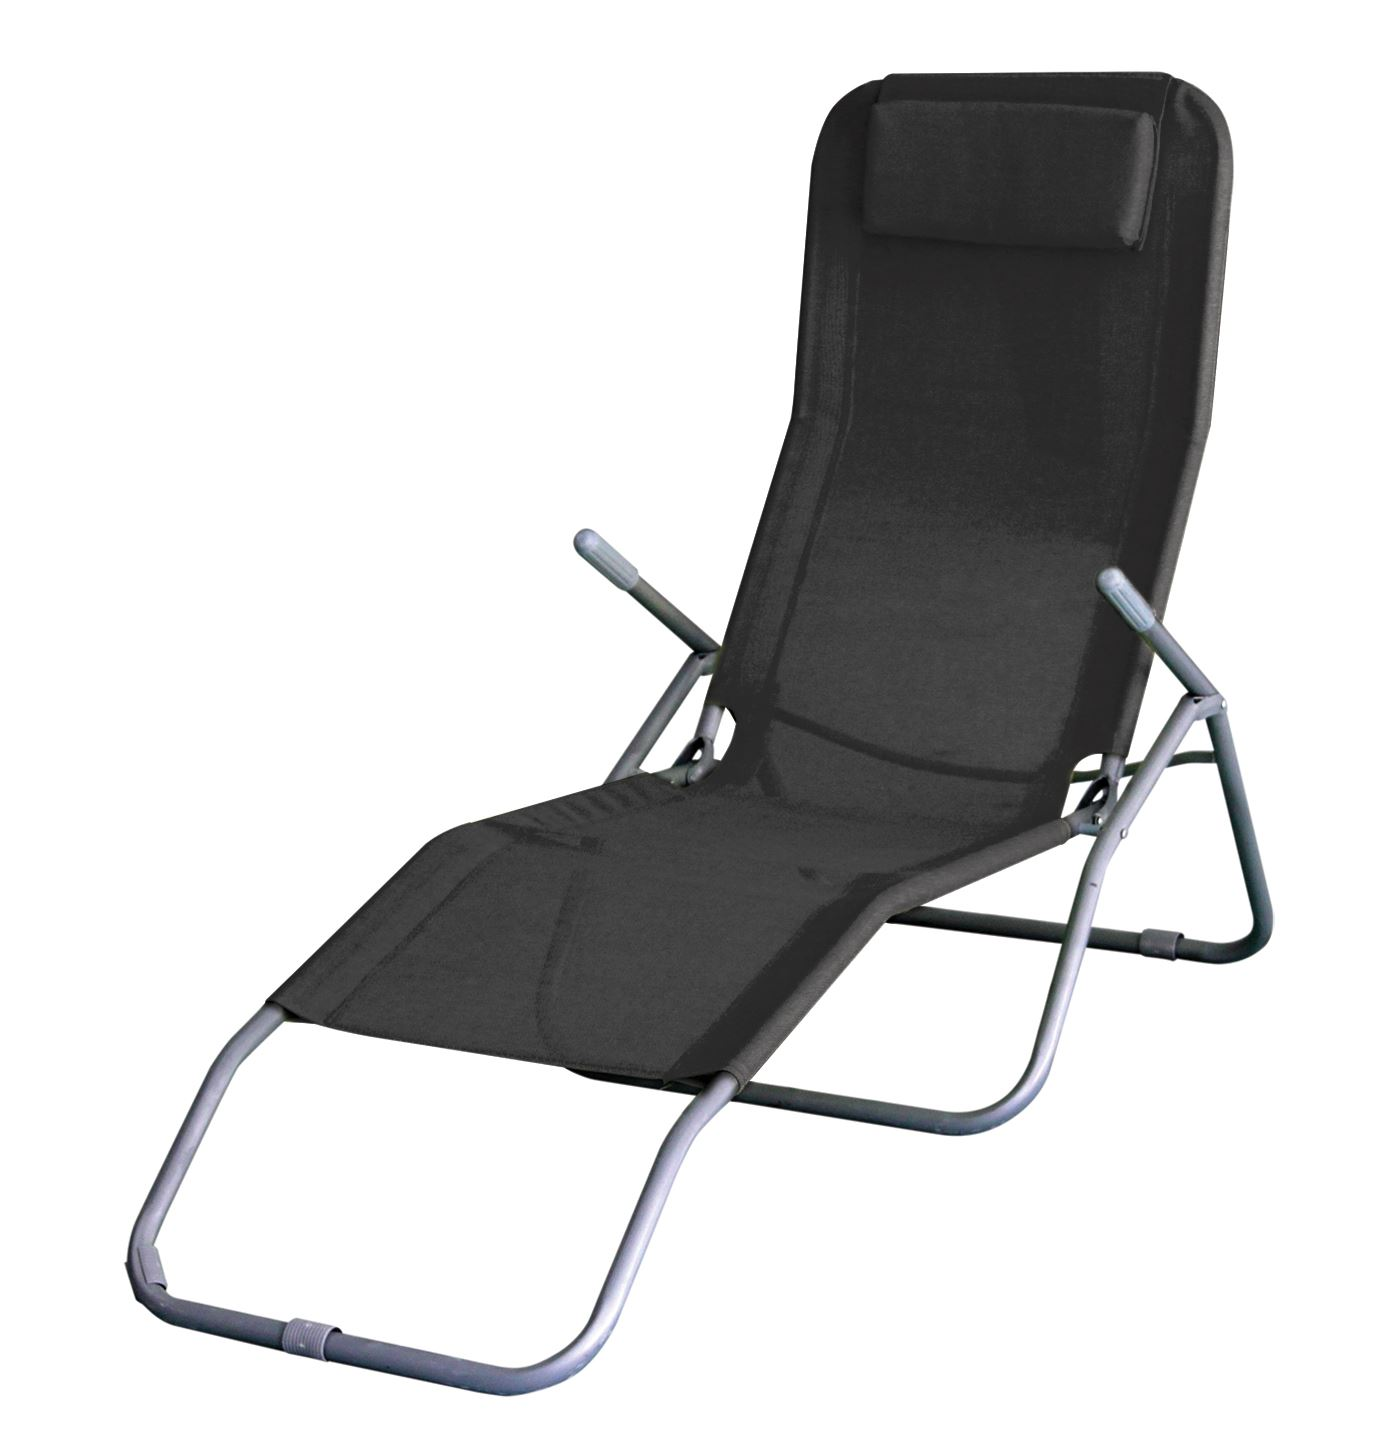 Folding Sun Lounger Recliner Chair Bed Armrest Garden Patio Deck